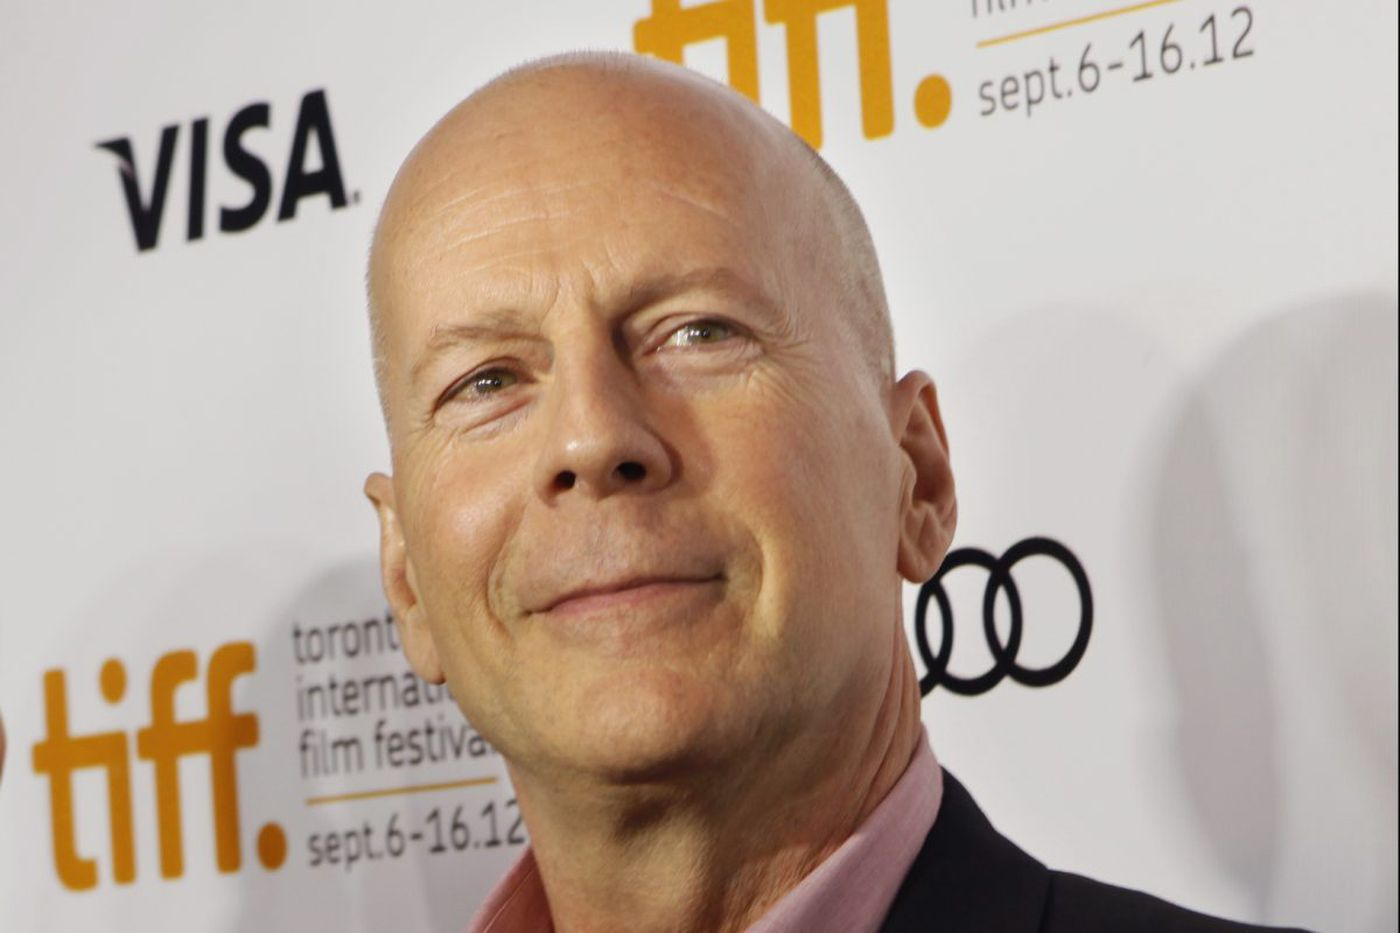 Bruce Willis had drinks at Scarpetta, steak at Barclay Prime in Philly last night